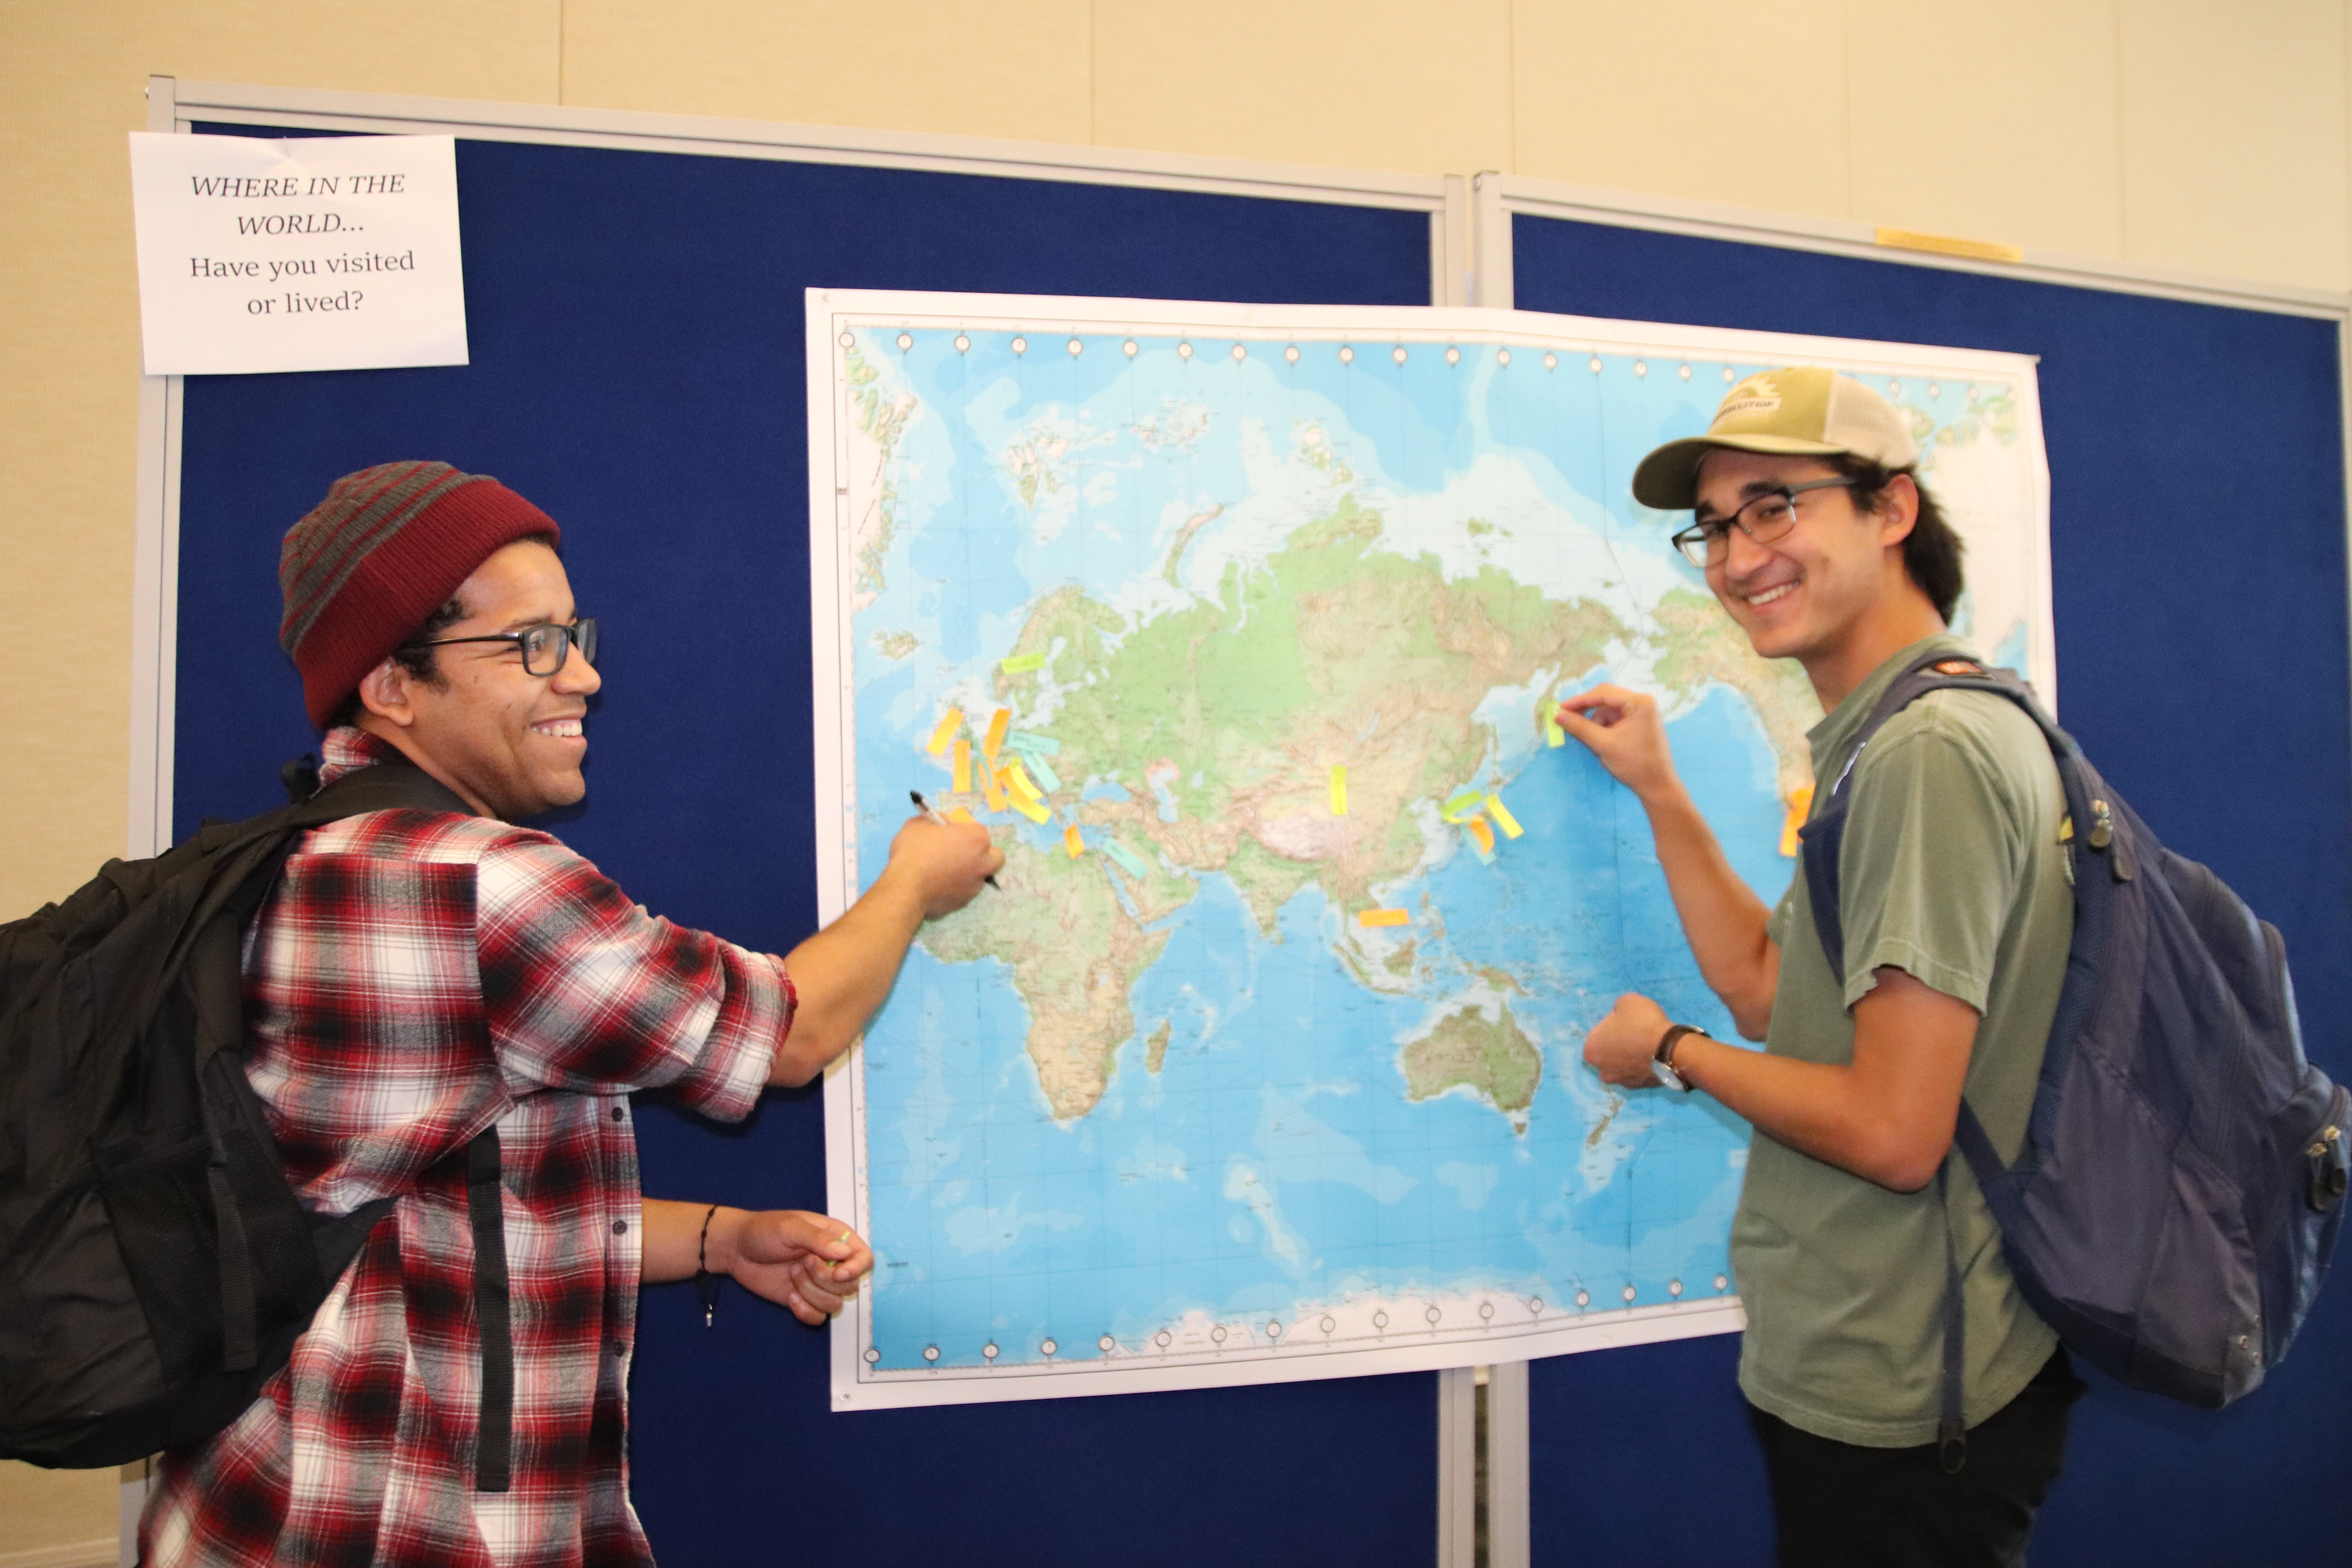 Students pinpointing parts of the world they have visited or lived on a map of the Earth.